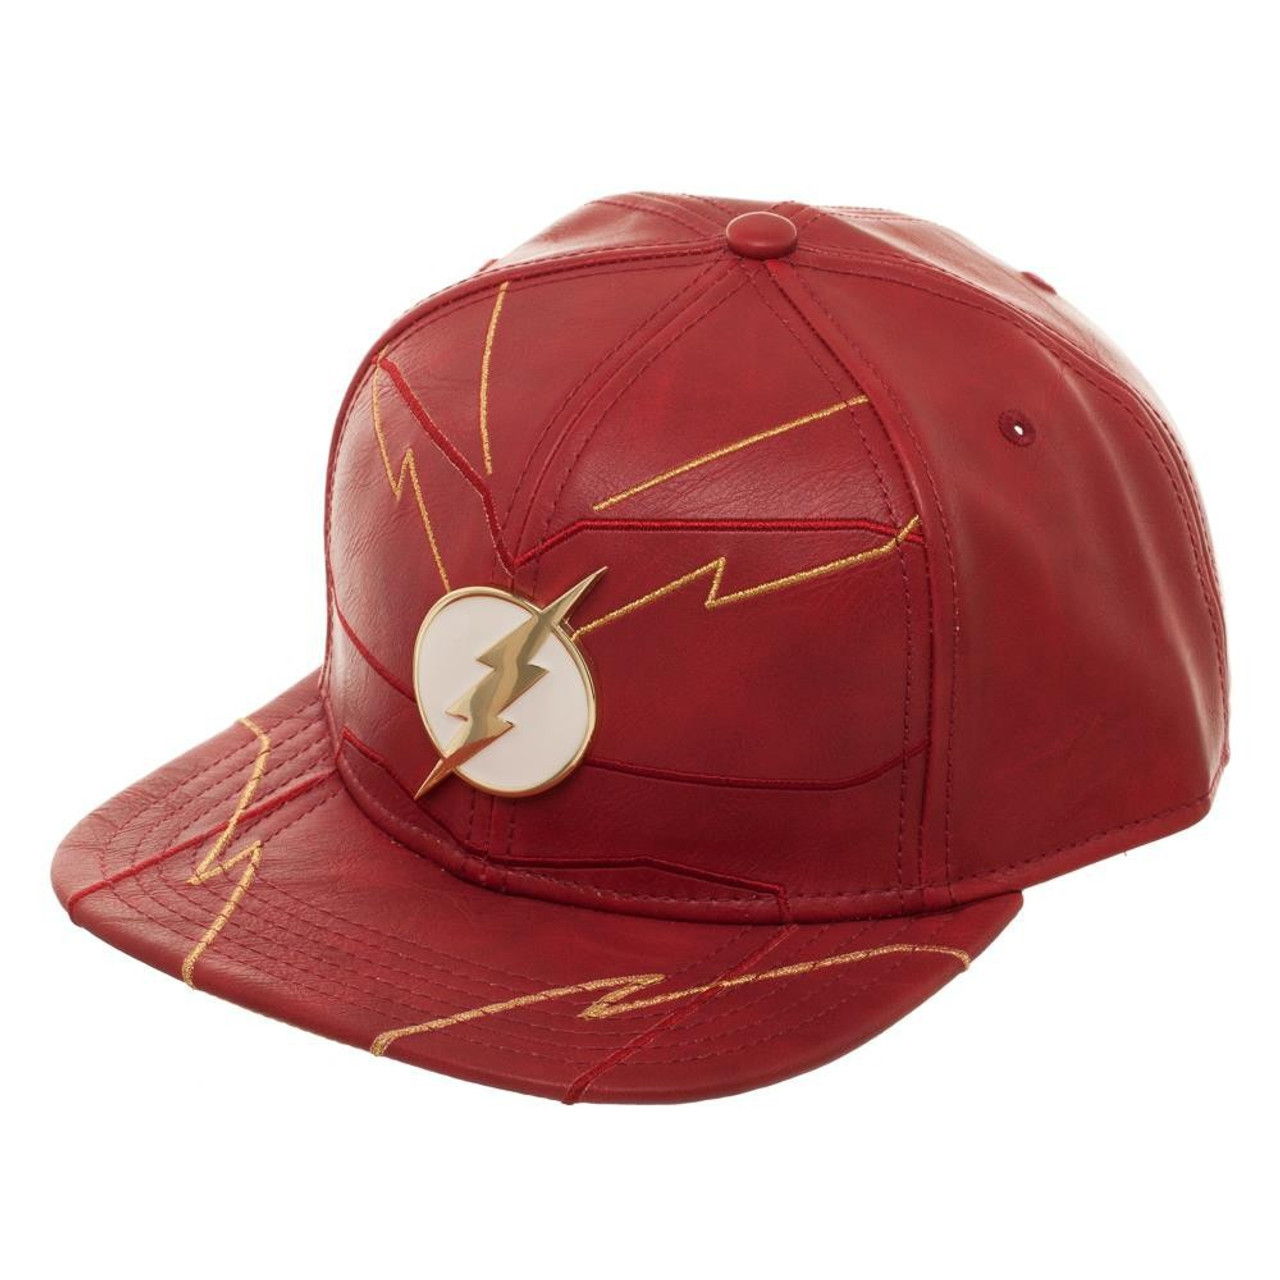 c0dbcb61c69 DC The Flash Flash Rebirth Suit Up Snapback Cap Bioworld - ToyWiz